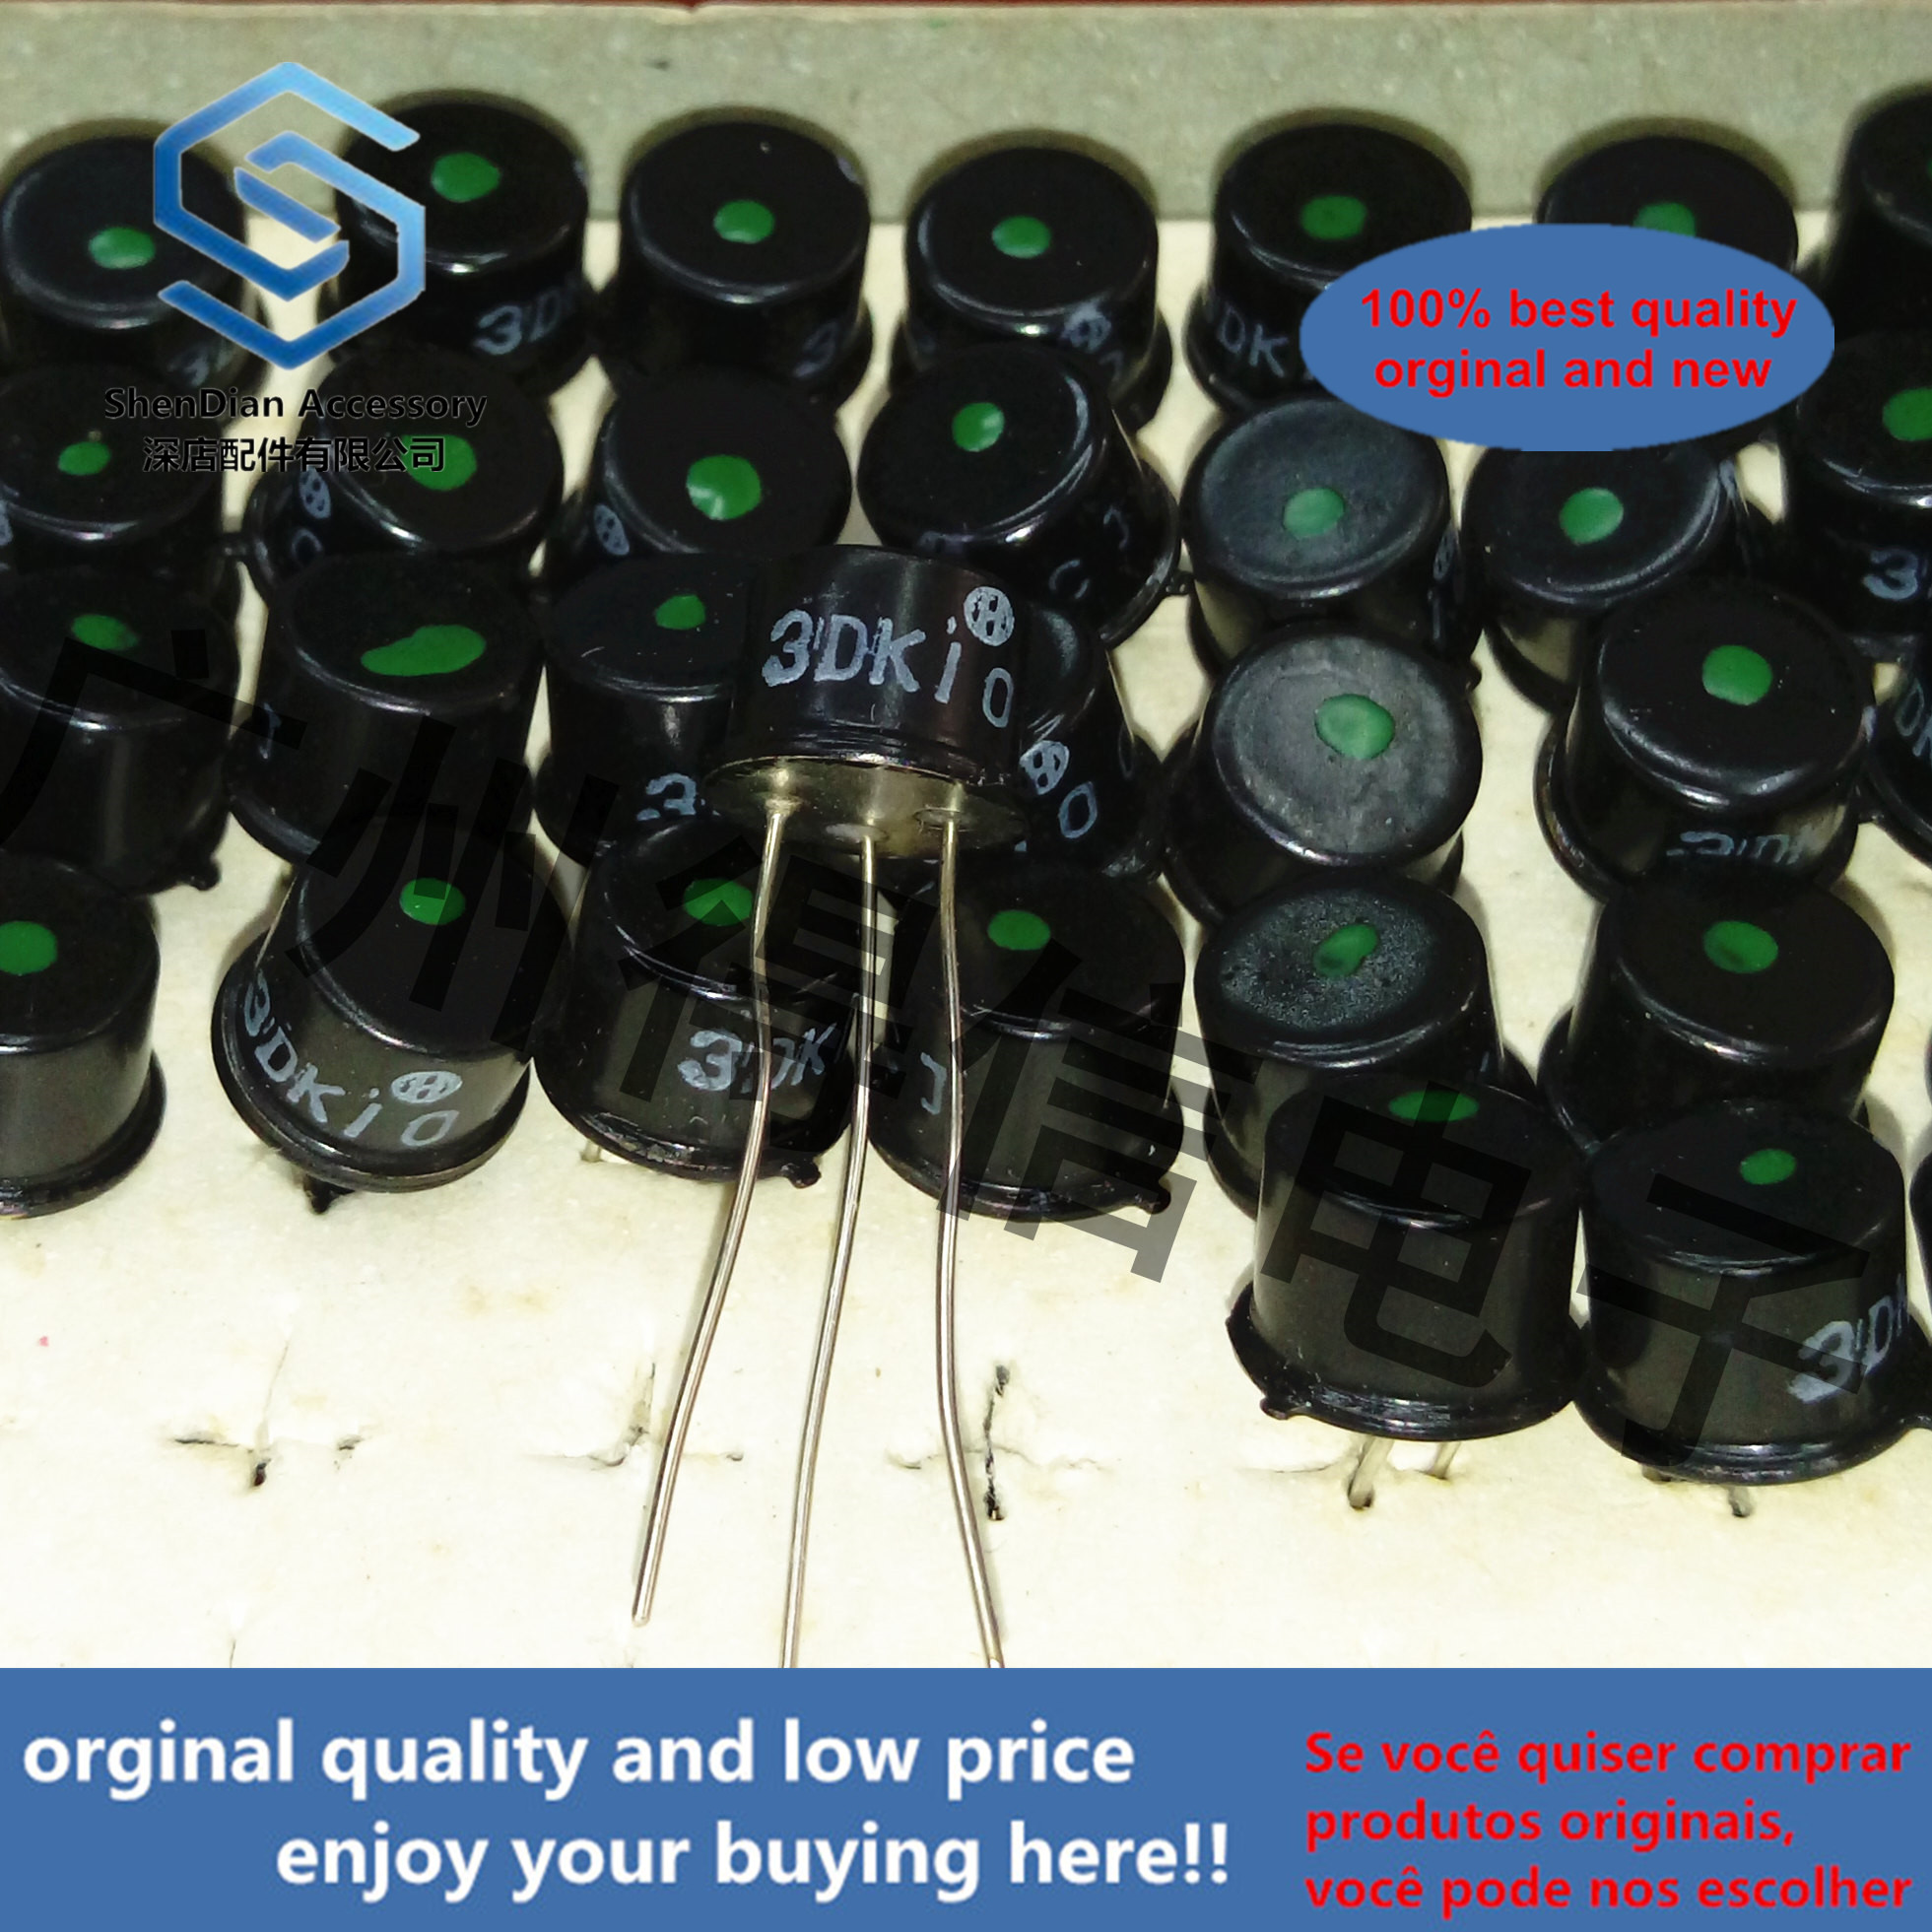 5pcs 100% Orginal New 3DK10CJ 3DK10C 3DK10 Green Dot Switch Transistor Triode Real Photo